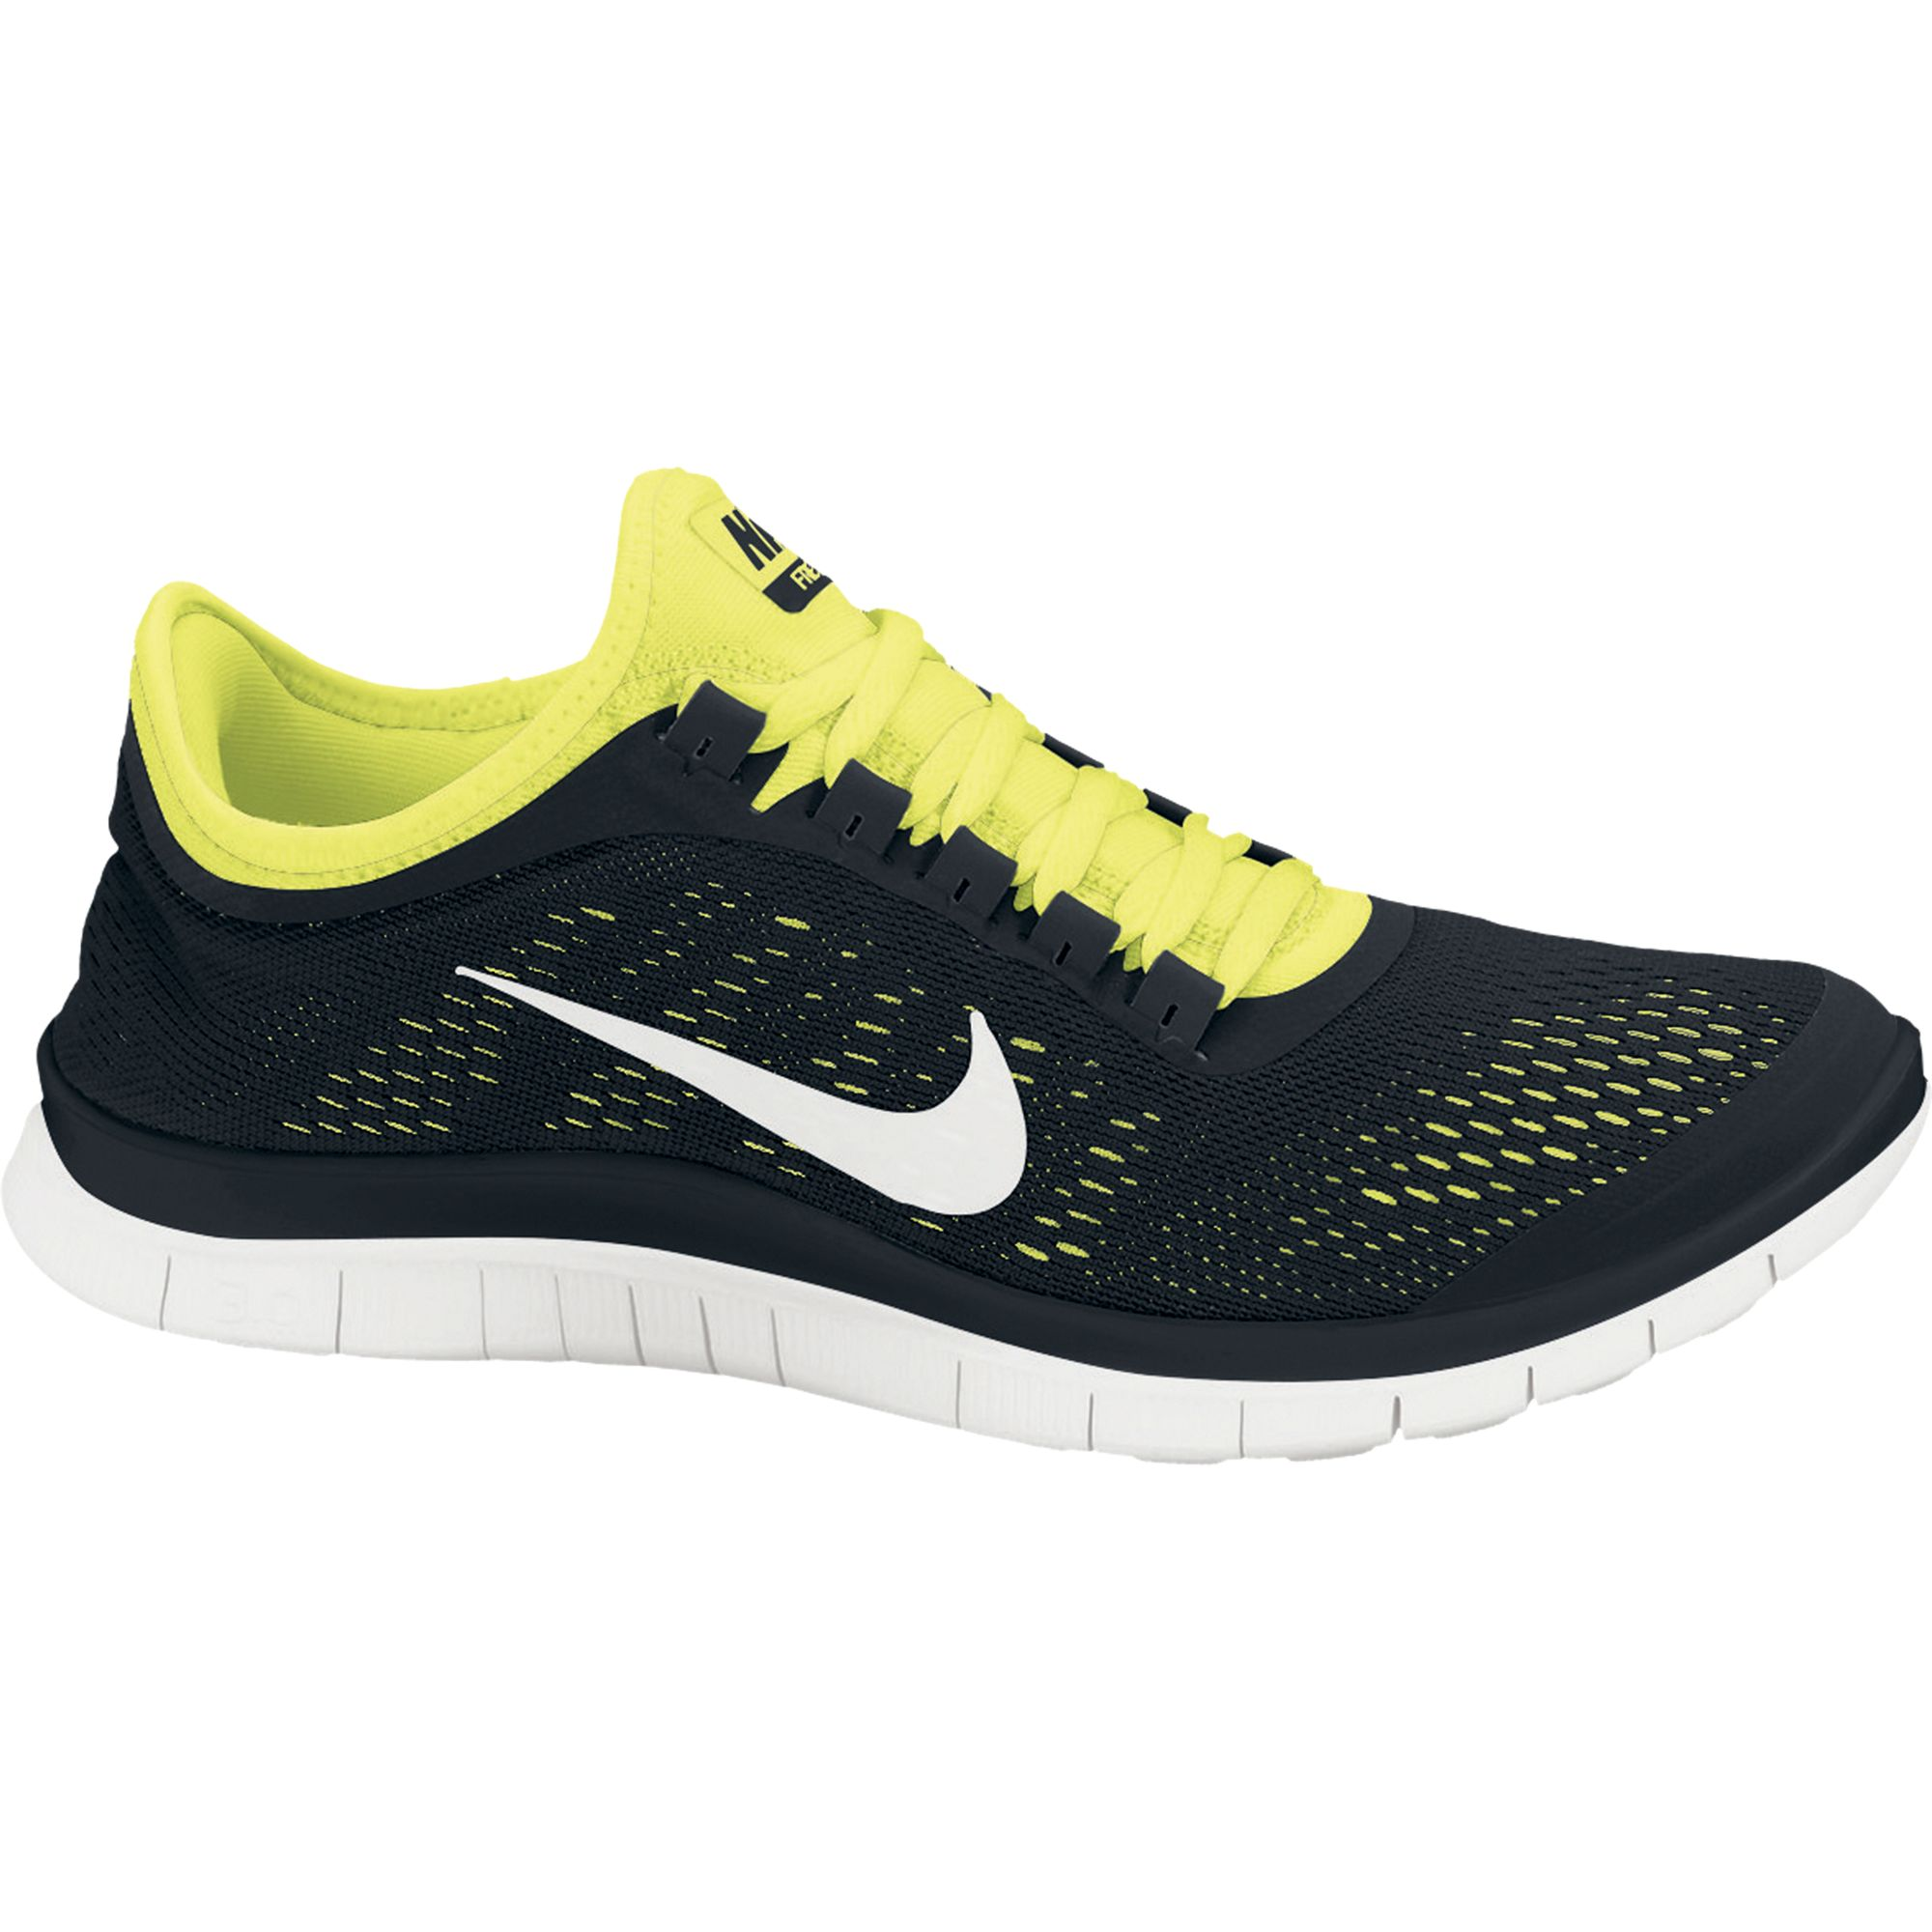 mens nike free 3.0 v5 yellow black